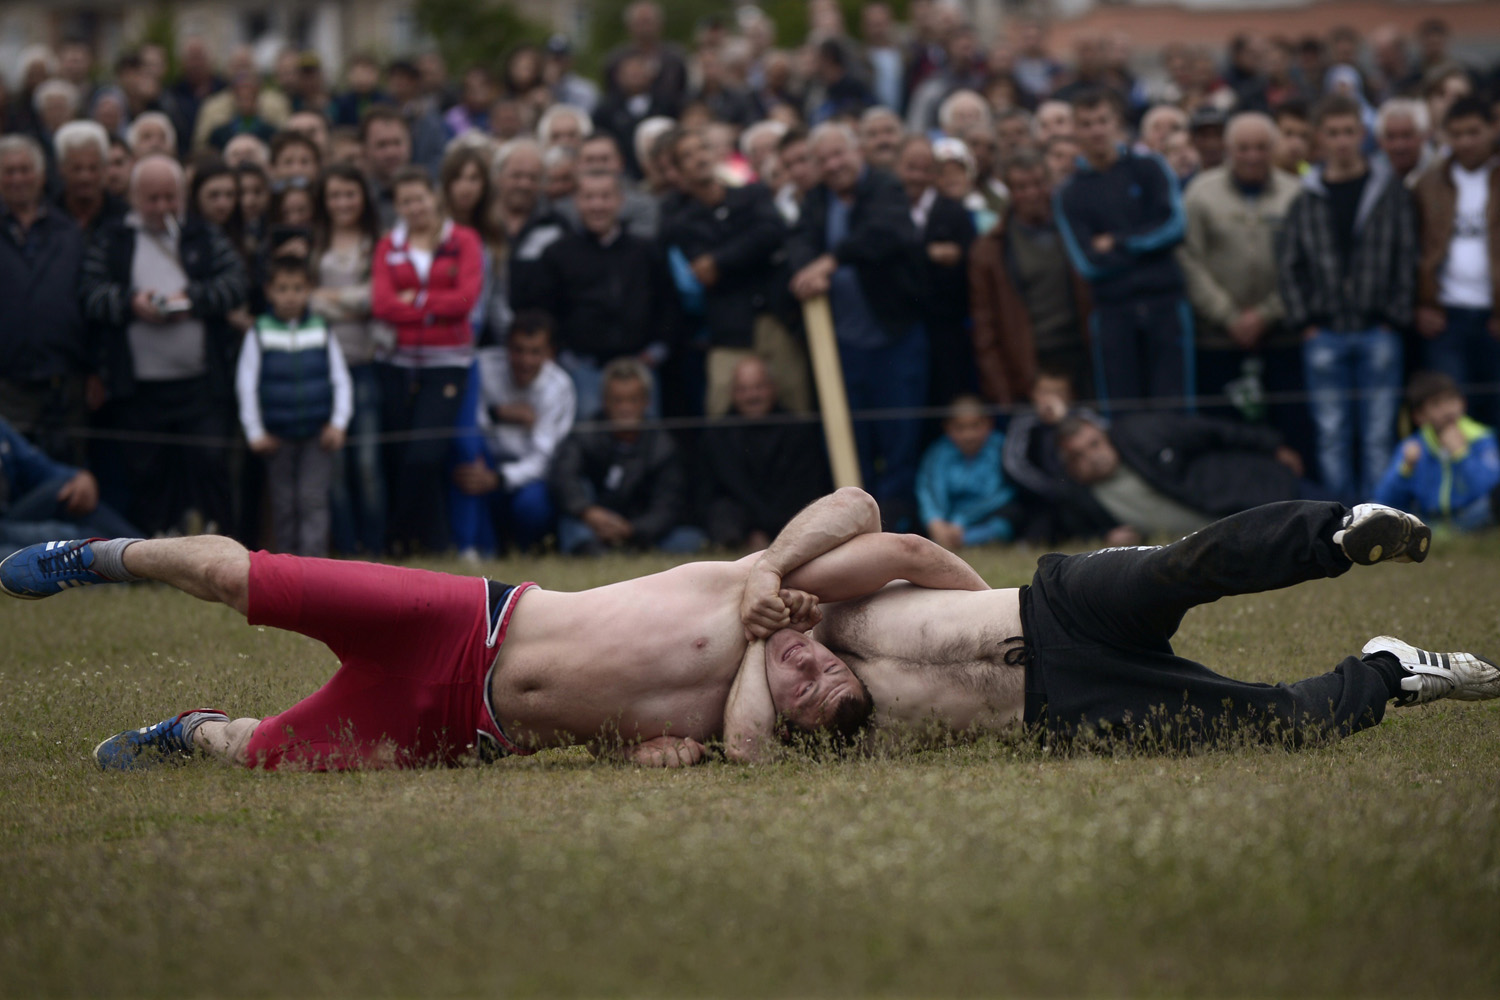 May 4, 2014. Competitors are locked into a strangulation during a traditional wrestling tournament, part of a holiday marking the circumcisions of young boys in the village of Draginovo.